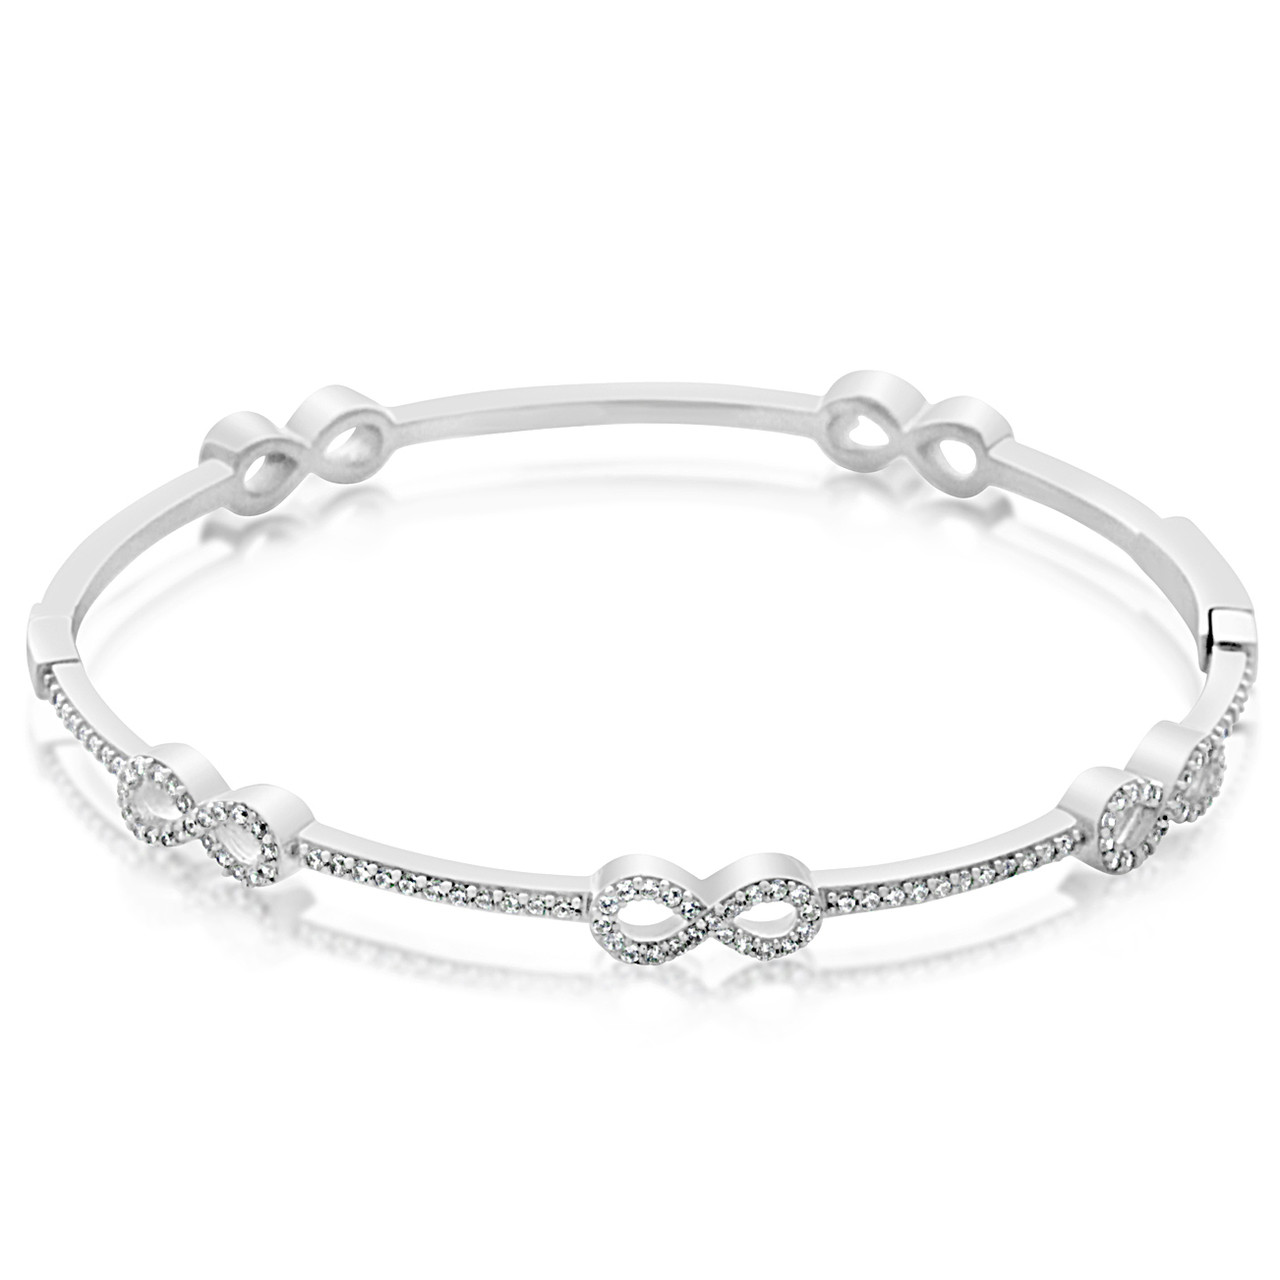 fb25c14b7c1a17 Sterling Silver Infinity AAA Quality Cubic Zirconia Bangle Bracelet - Artune  Jewelry Online